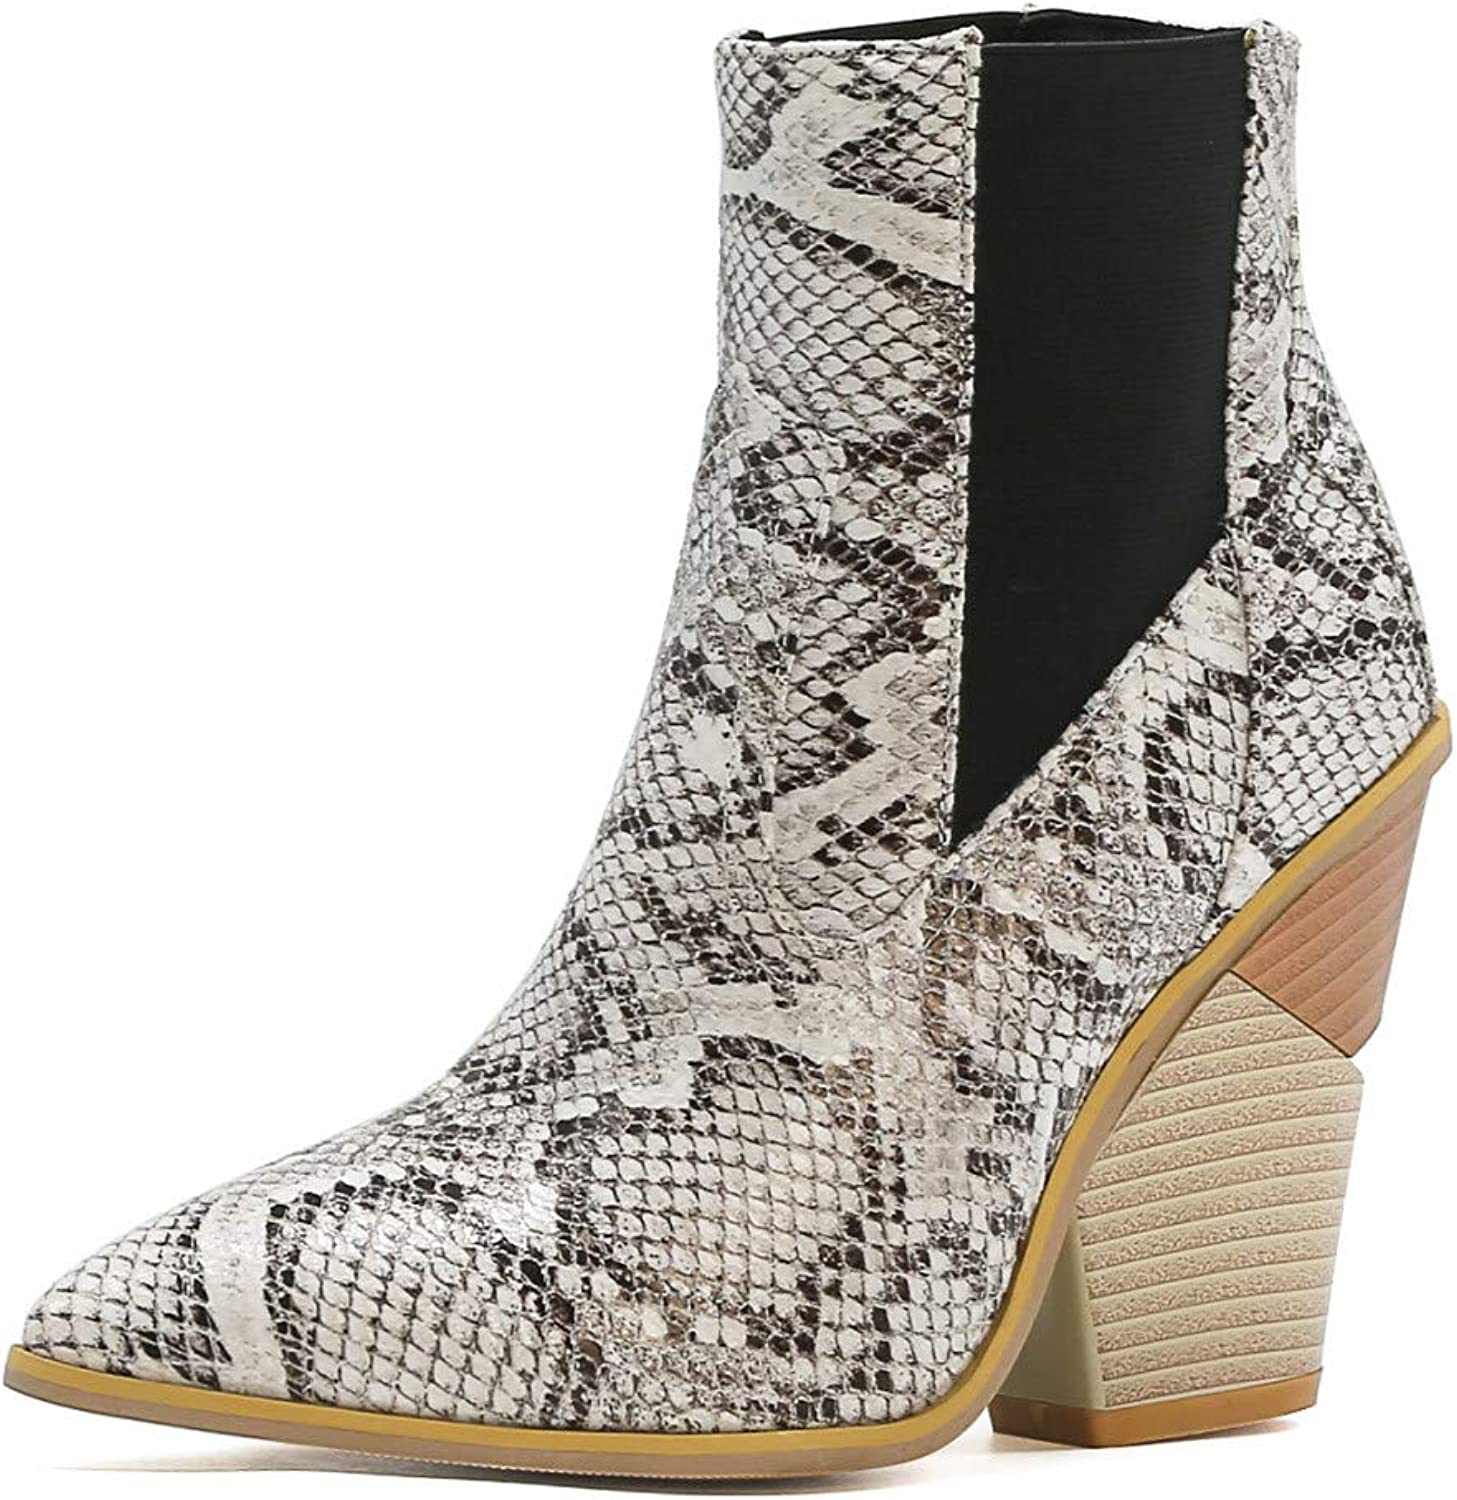 Patent Leather Booties for Women Ranking TOP18 - Ankle At the price B Chunky Heeled Women's